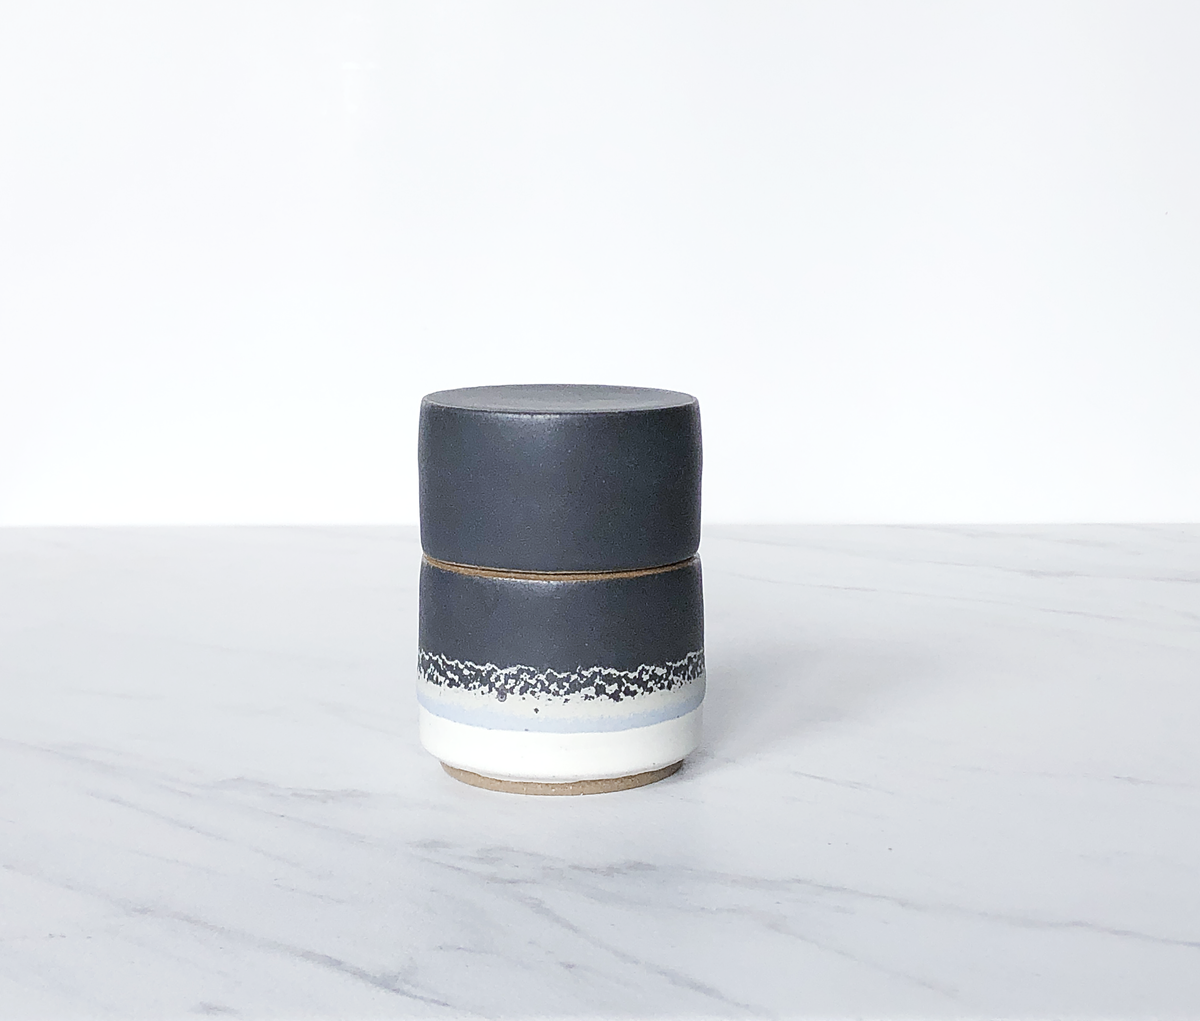 Image of Ceramic match holder with lid, tan clay, glazed in matte charcoal + cream